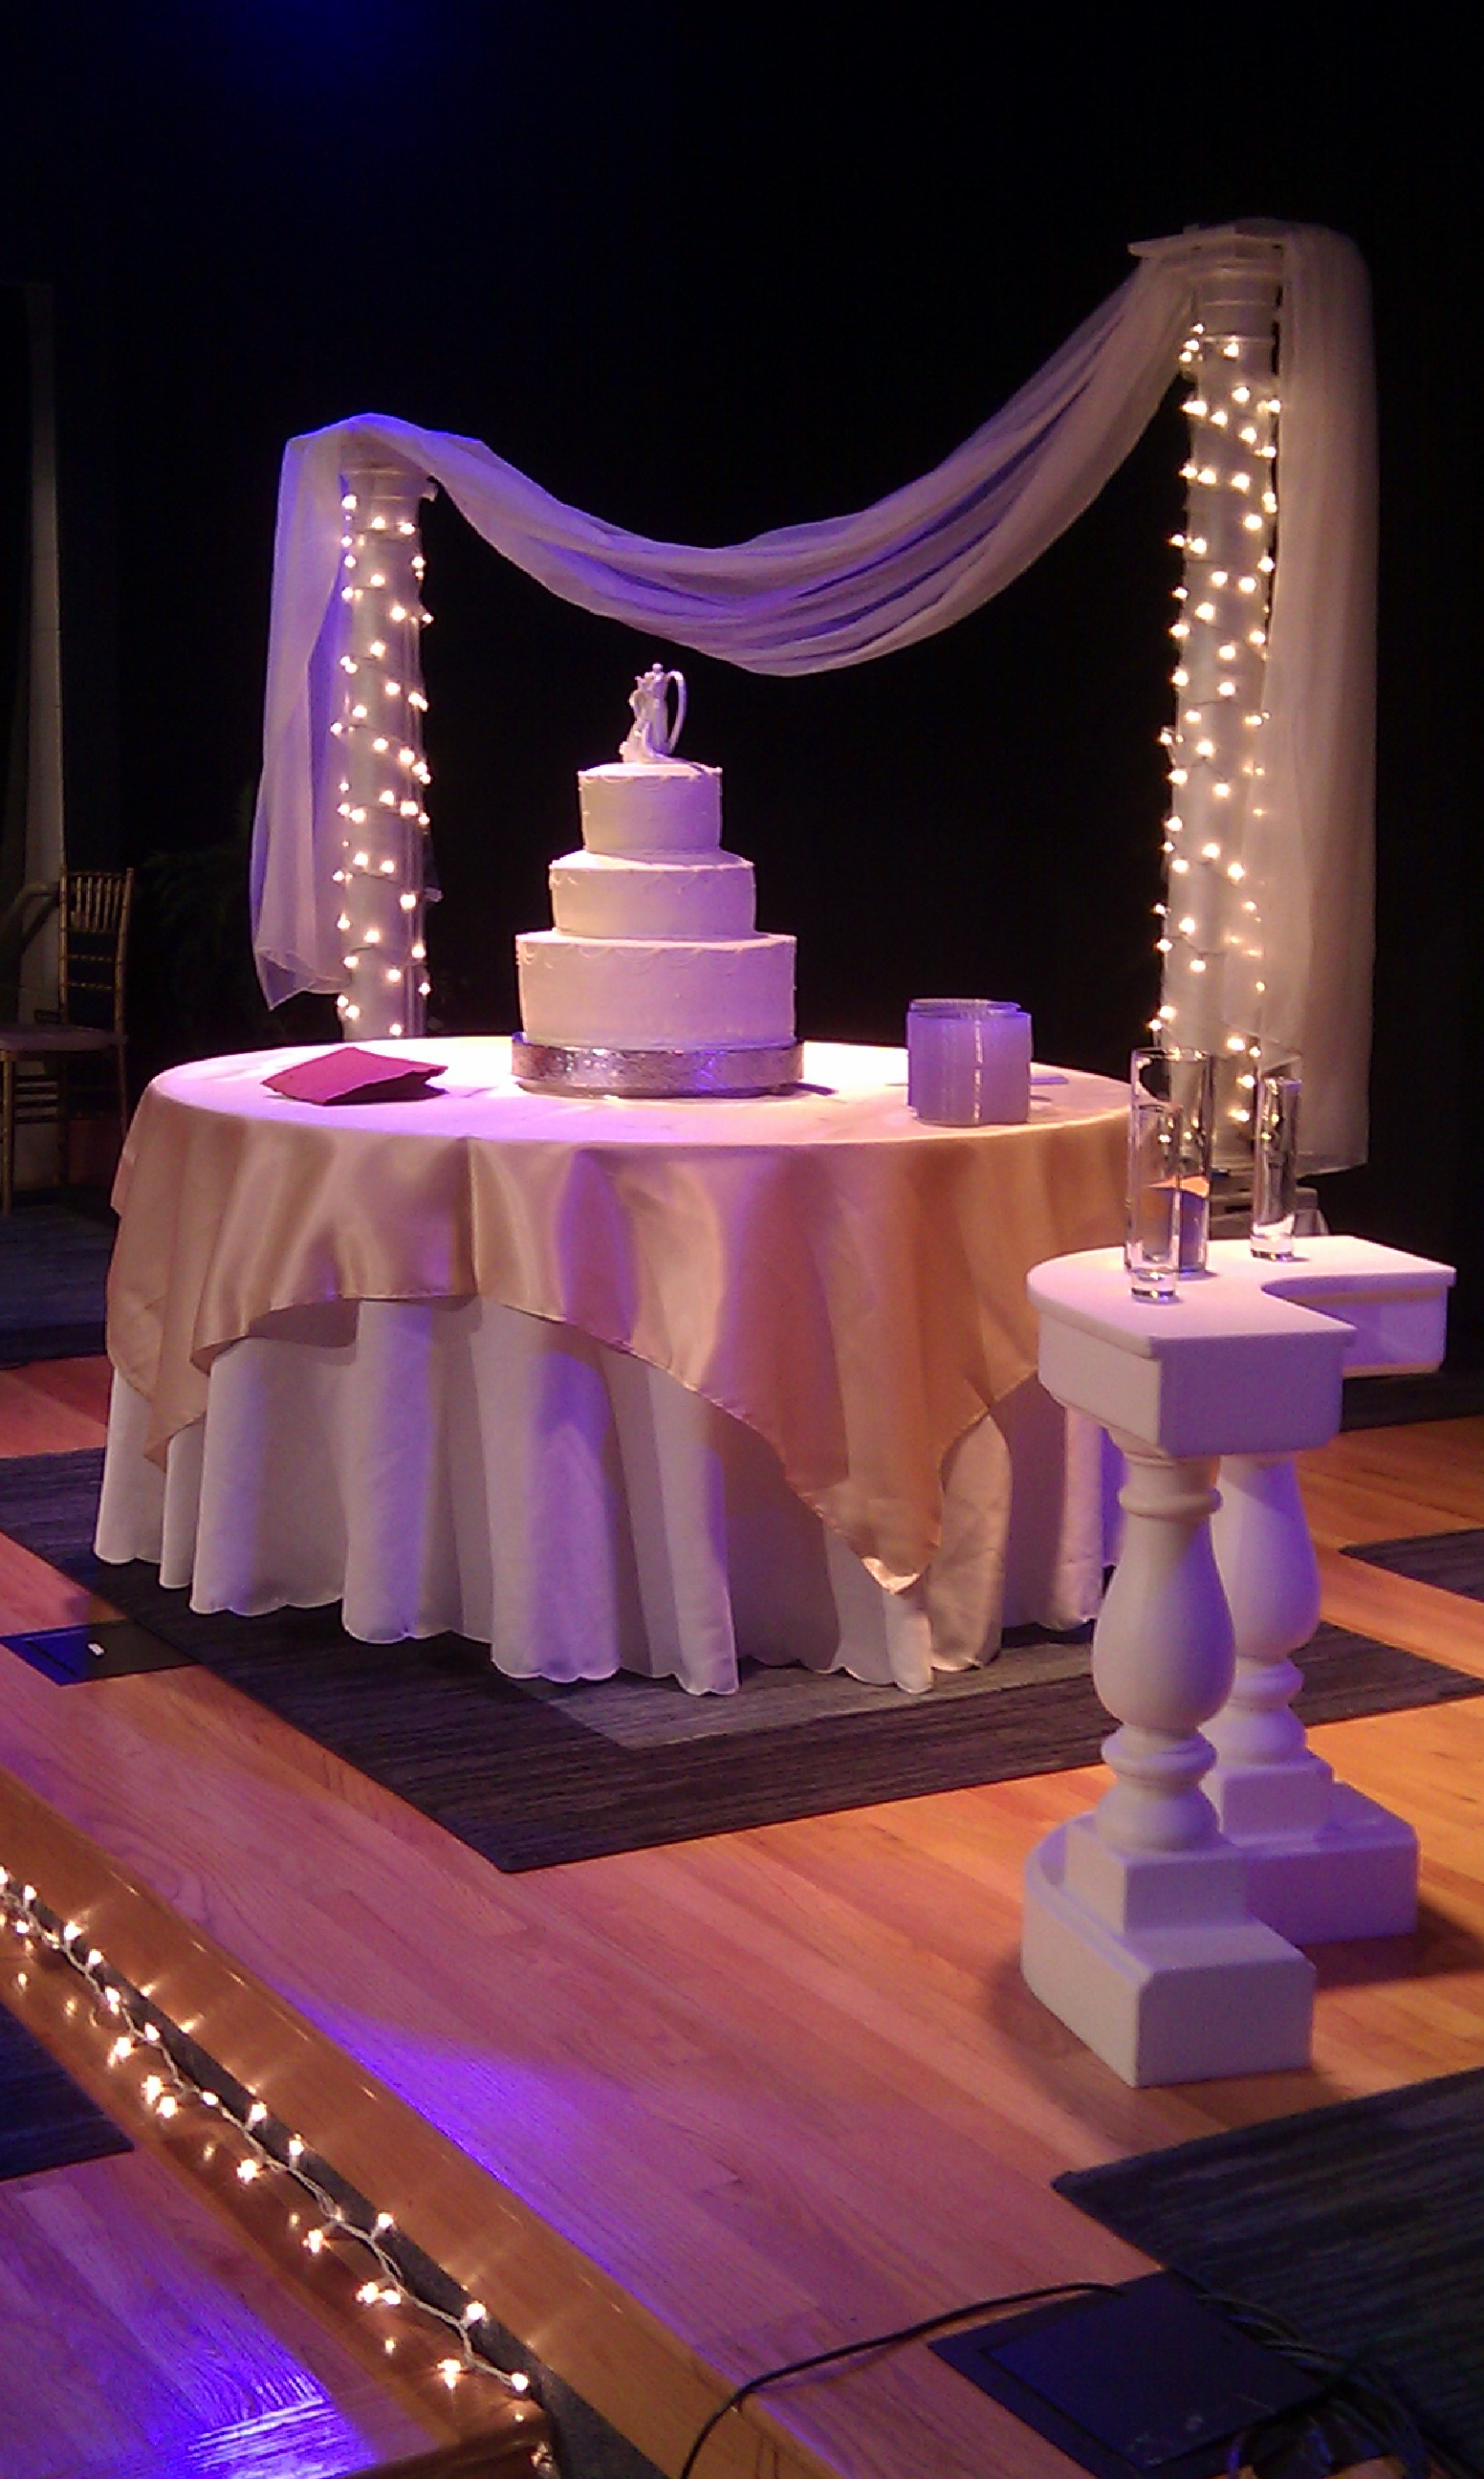 Best Wedding Cakes Ever Made